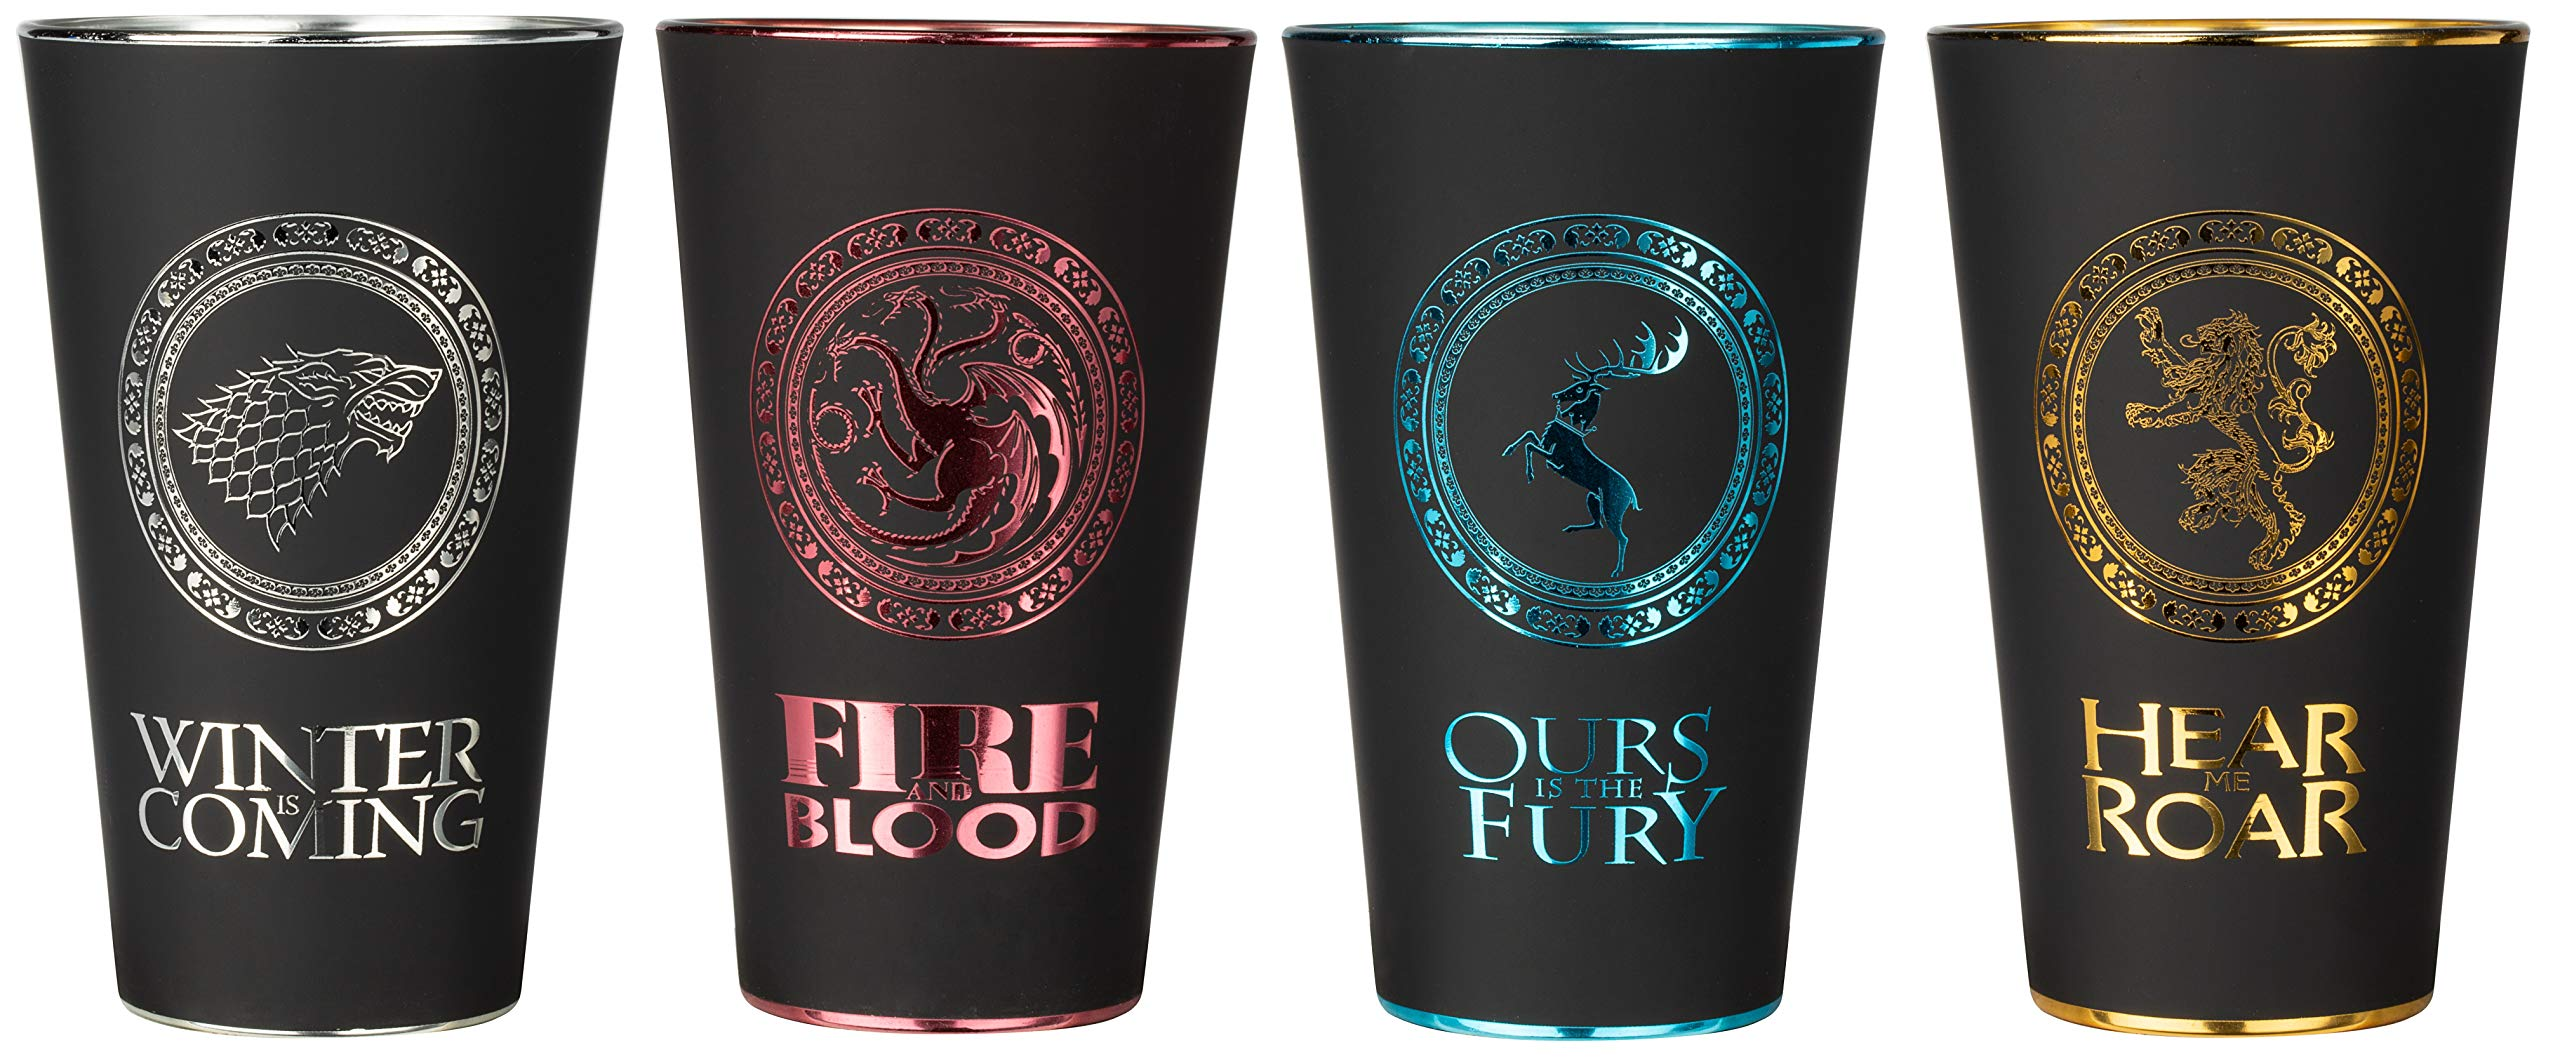 Game of Thrones Pint Glass Set - House Sigil Shaker Glasses - Set Of Four Black Pub Beer Glasses - Novelty Glassware Collectibles